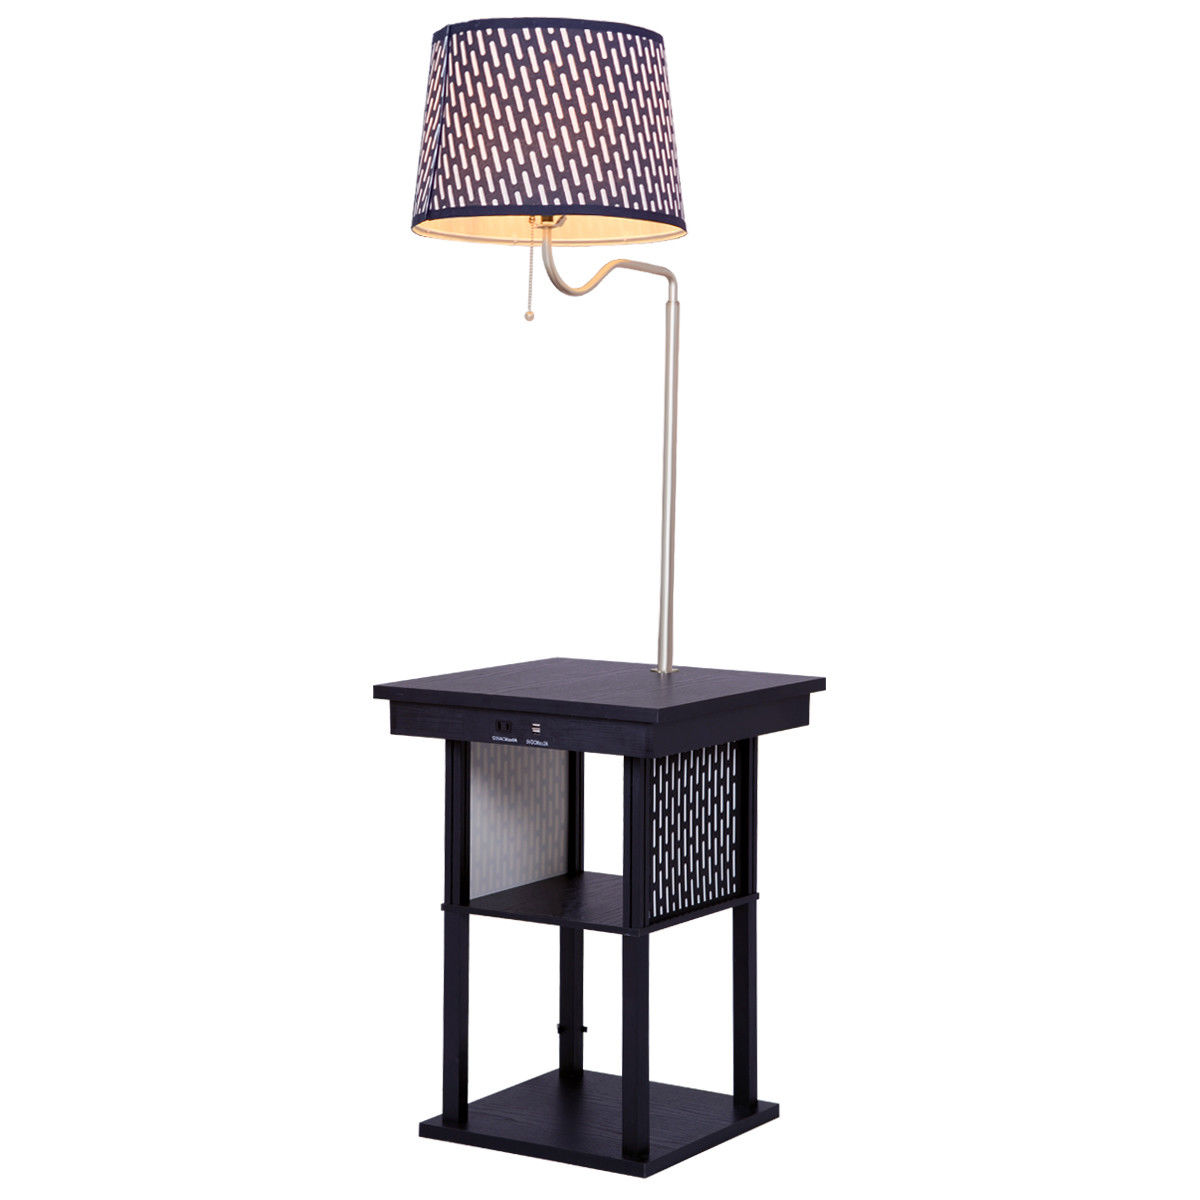 Gymax Floor Lamp Swing Arm Lamp Built In End Table w  Shade 2 USB Ports Living Room by Gymax